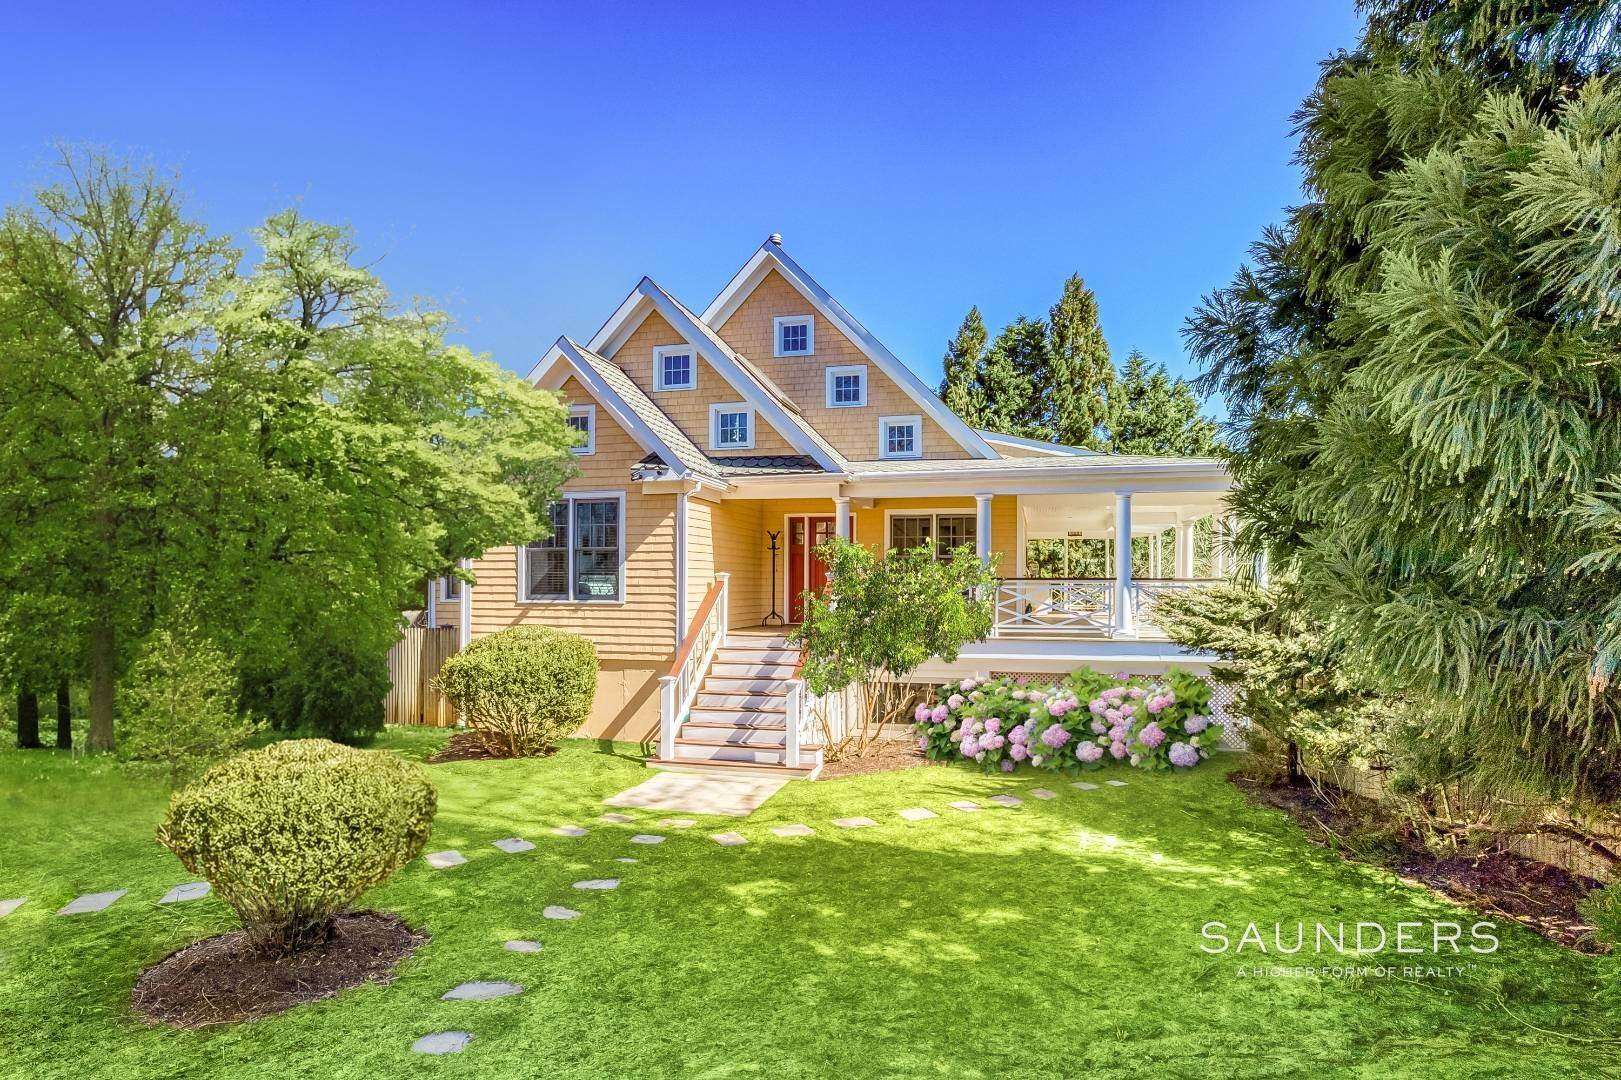 Single Family Homes for Sale at Shelter Island Beach Idyll With Guest House And Pool 1 Brander Parkway, Shelter Island Heights, Shelter Island, NY 11964